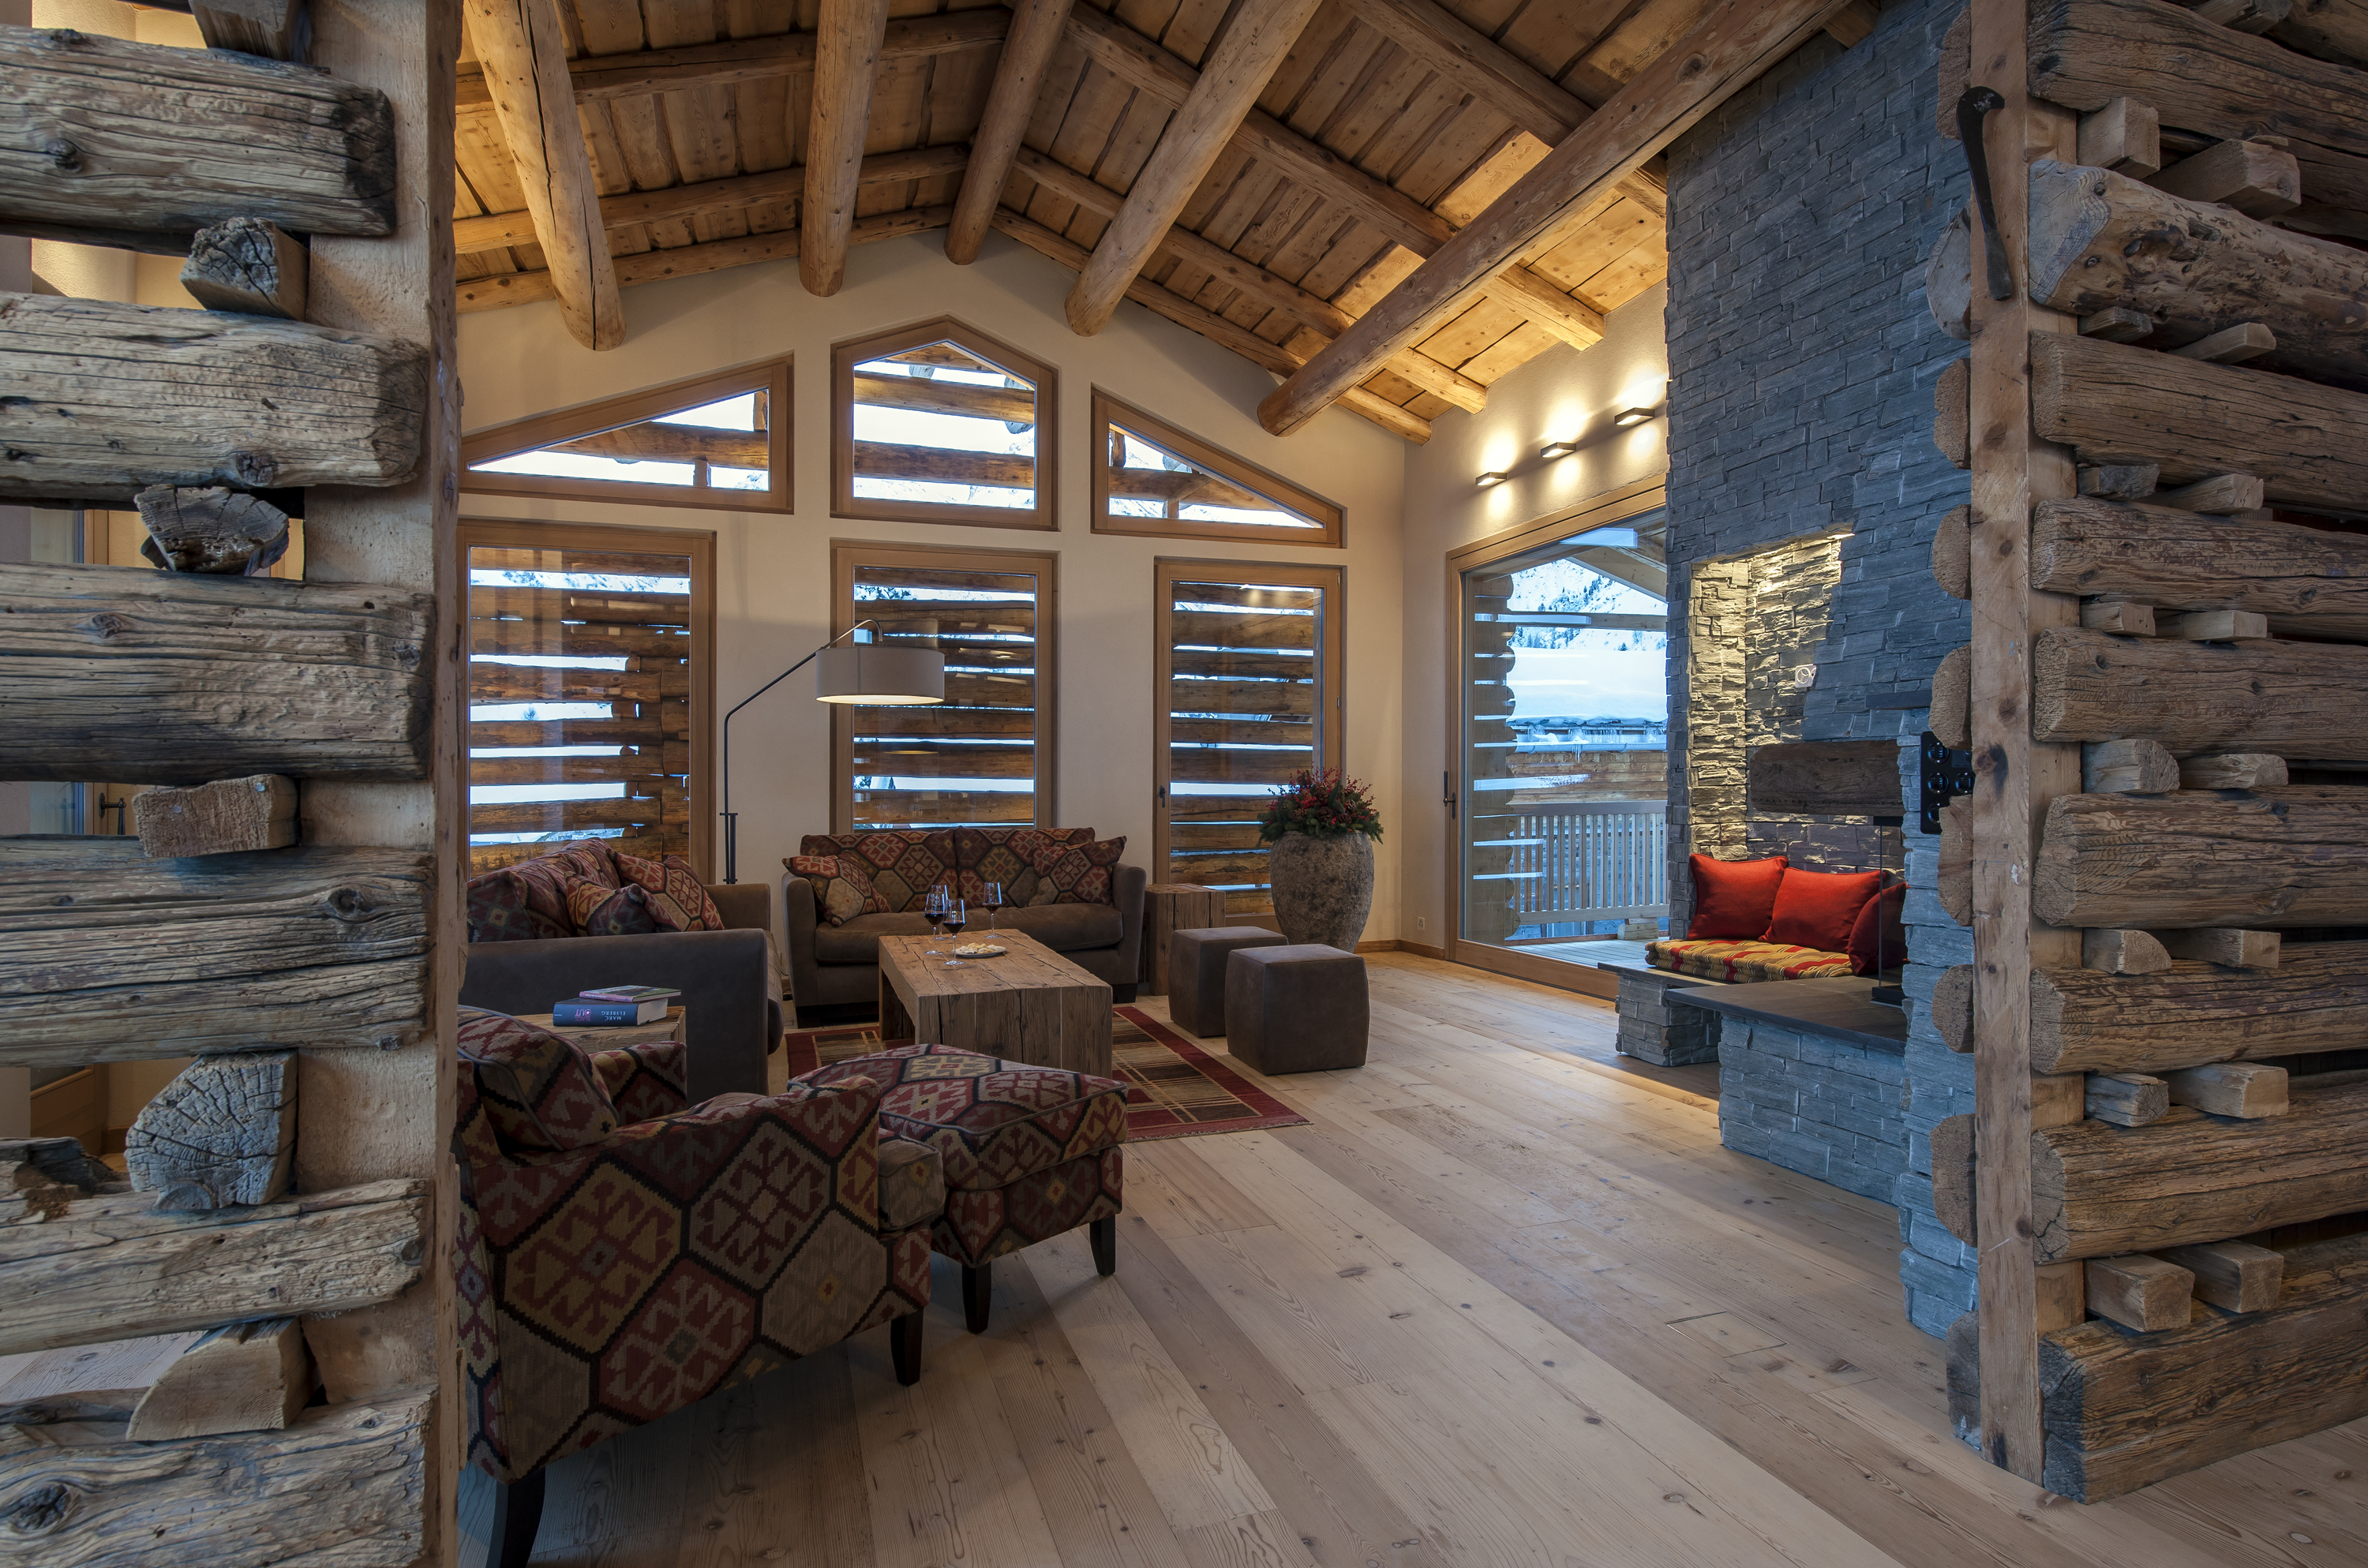 4. Stay in a luxury chalet